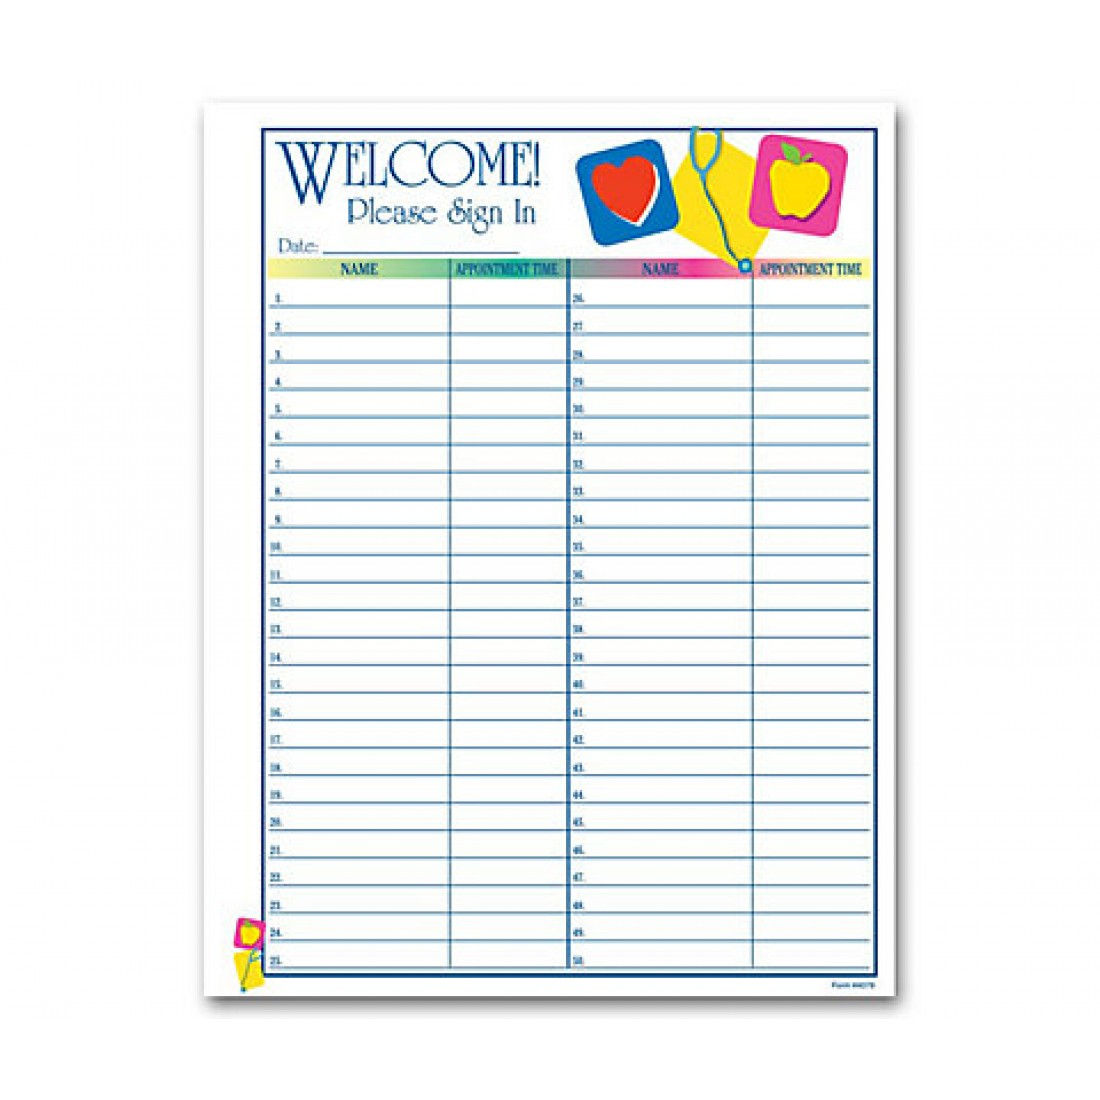 Patient Sign-In Sheet, Medical Icon Design